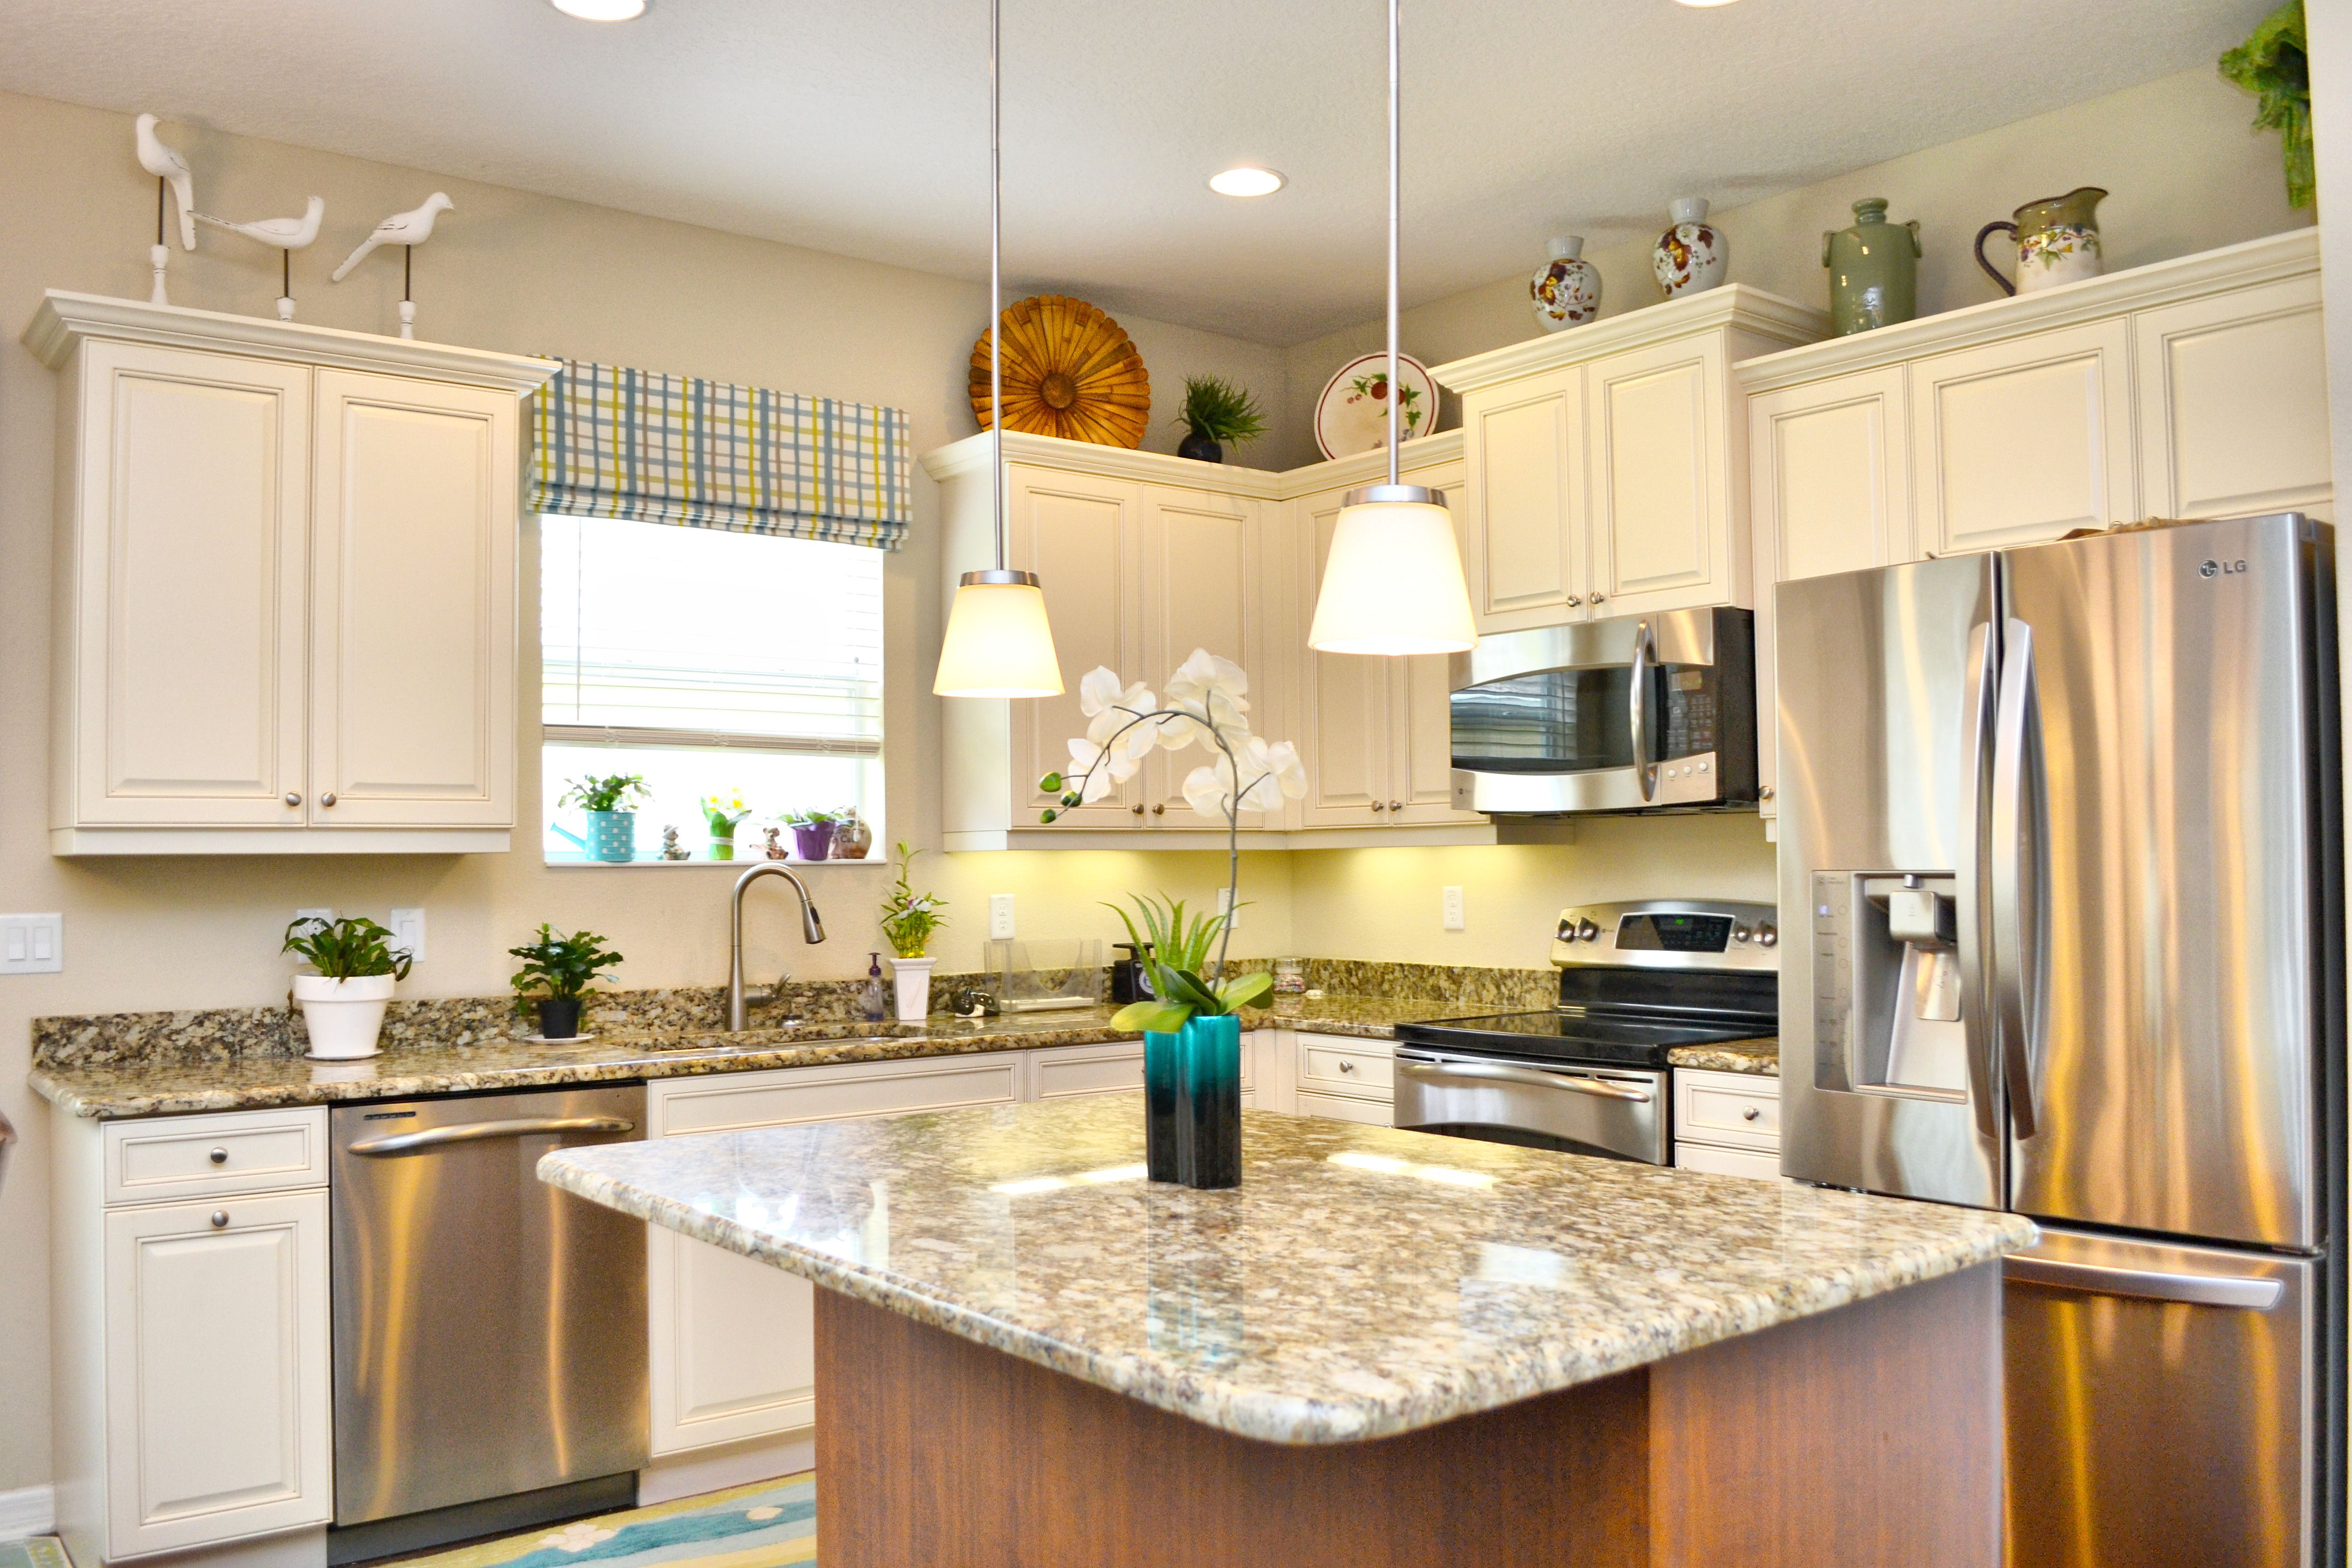 Delicieux WHITE CABINETS, GRANITE, COASTAL STYLE KITCHEN. NEAL COMMUNITIES,  FRESHWATER 2, FOR